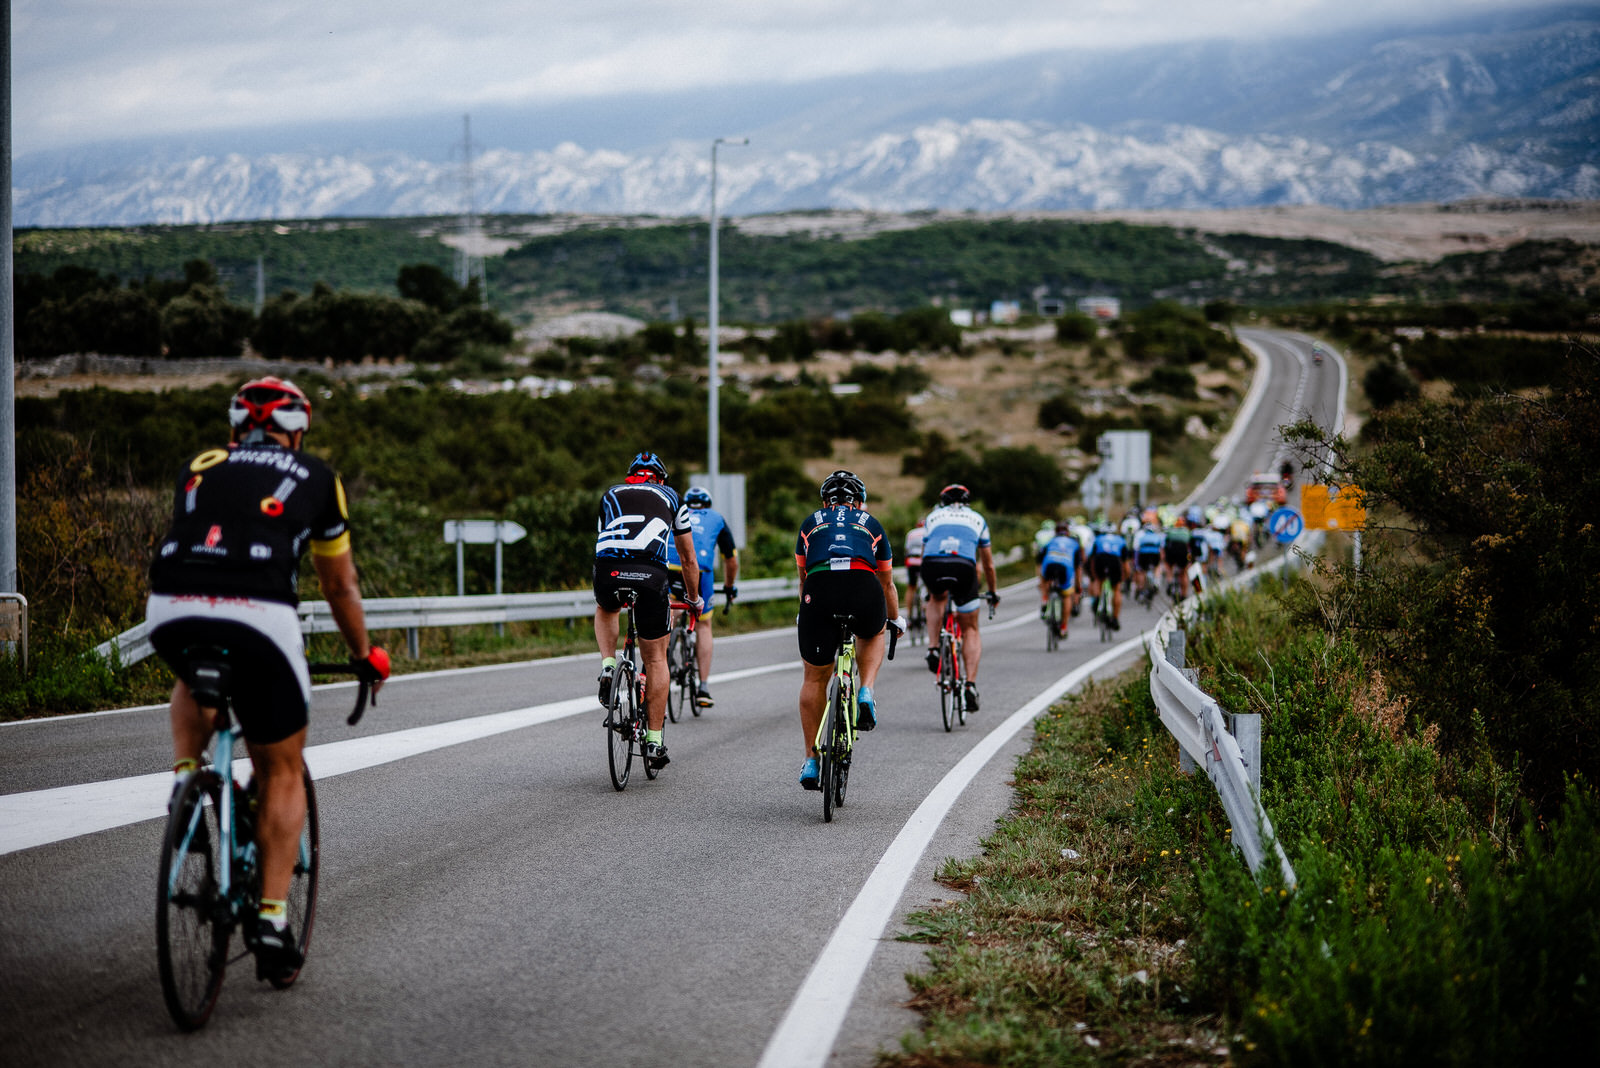 likaclub_Granfondo-Pag-–-Cycling-on-the-Moon_2019-9